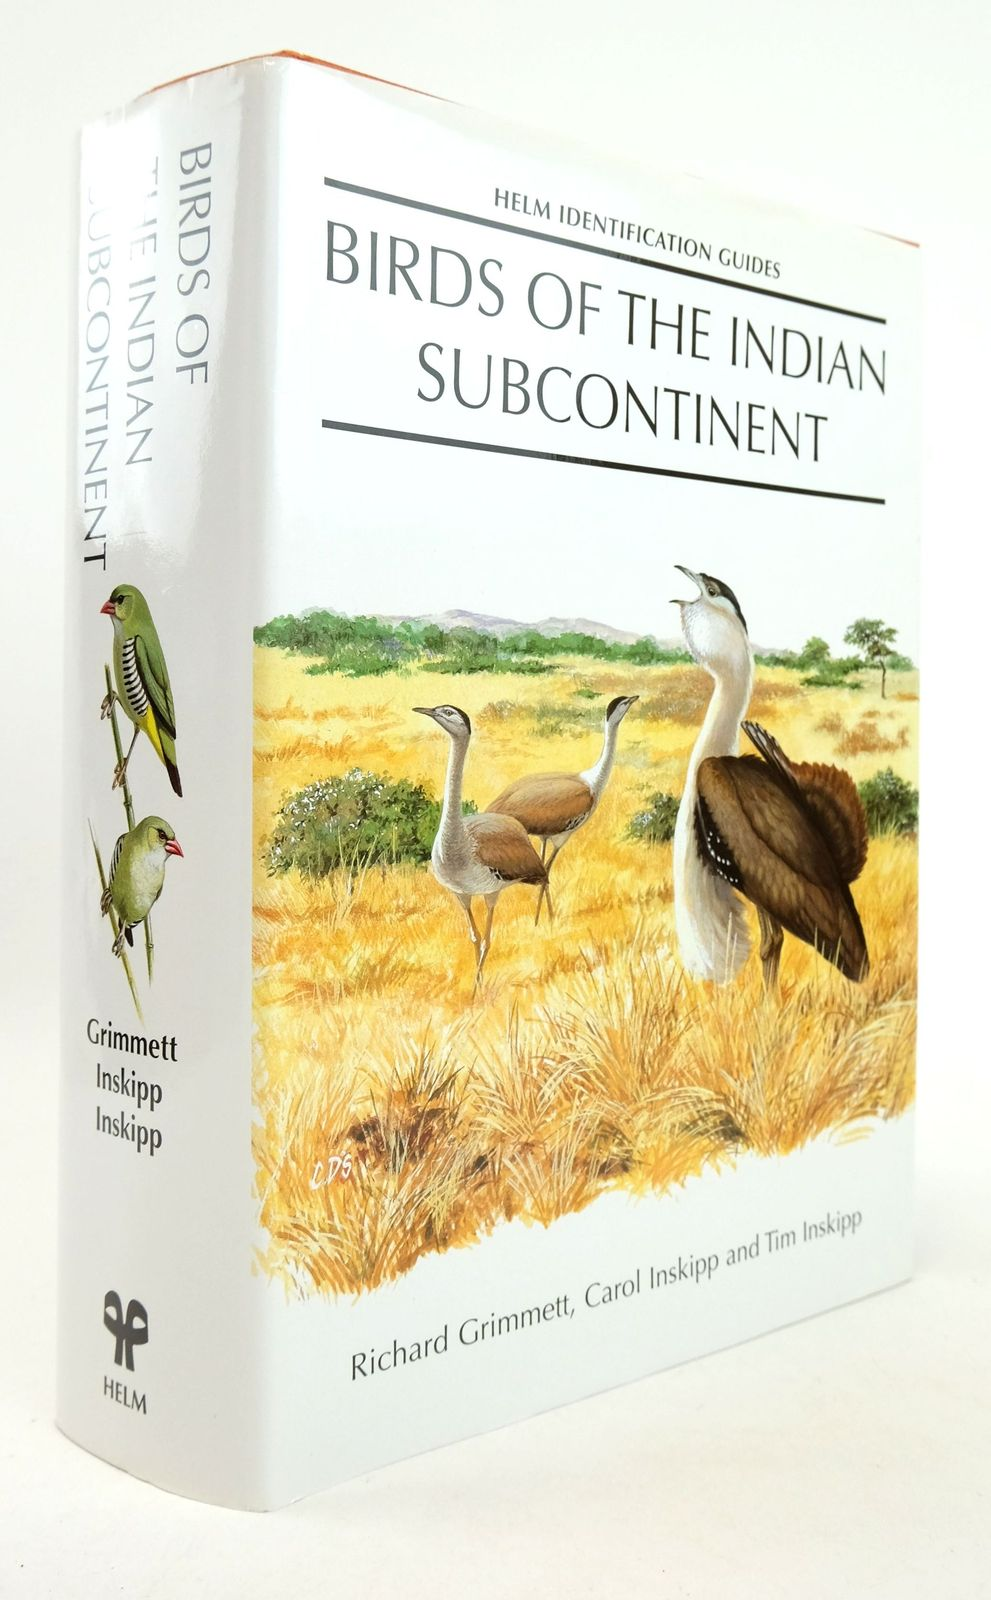 Photo of BIRDS OF THE INDIAN SUBCONTINENT (HELM IDENTIFICATION GUIDES) written by Grimmett, Richard Inskipp, Carol Inkskipp, Tim et al,  illustrated by Byers, Clive Cole, Daniel et al.,  published by Christopher Helm (STOCK CODE: 1819318)  for sale by Stella & Rose's Books